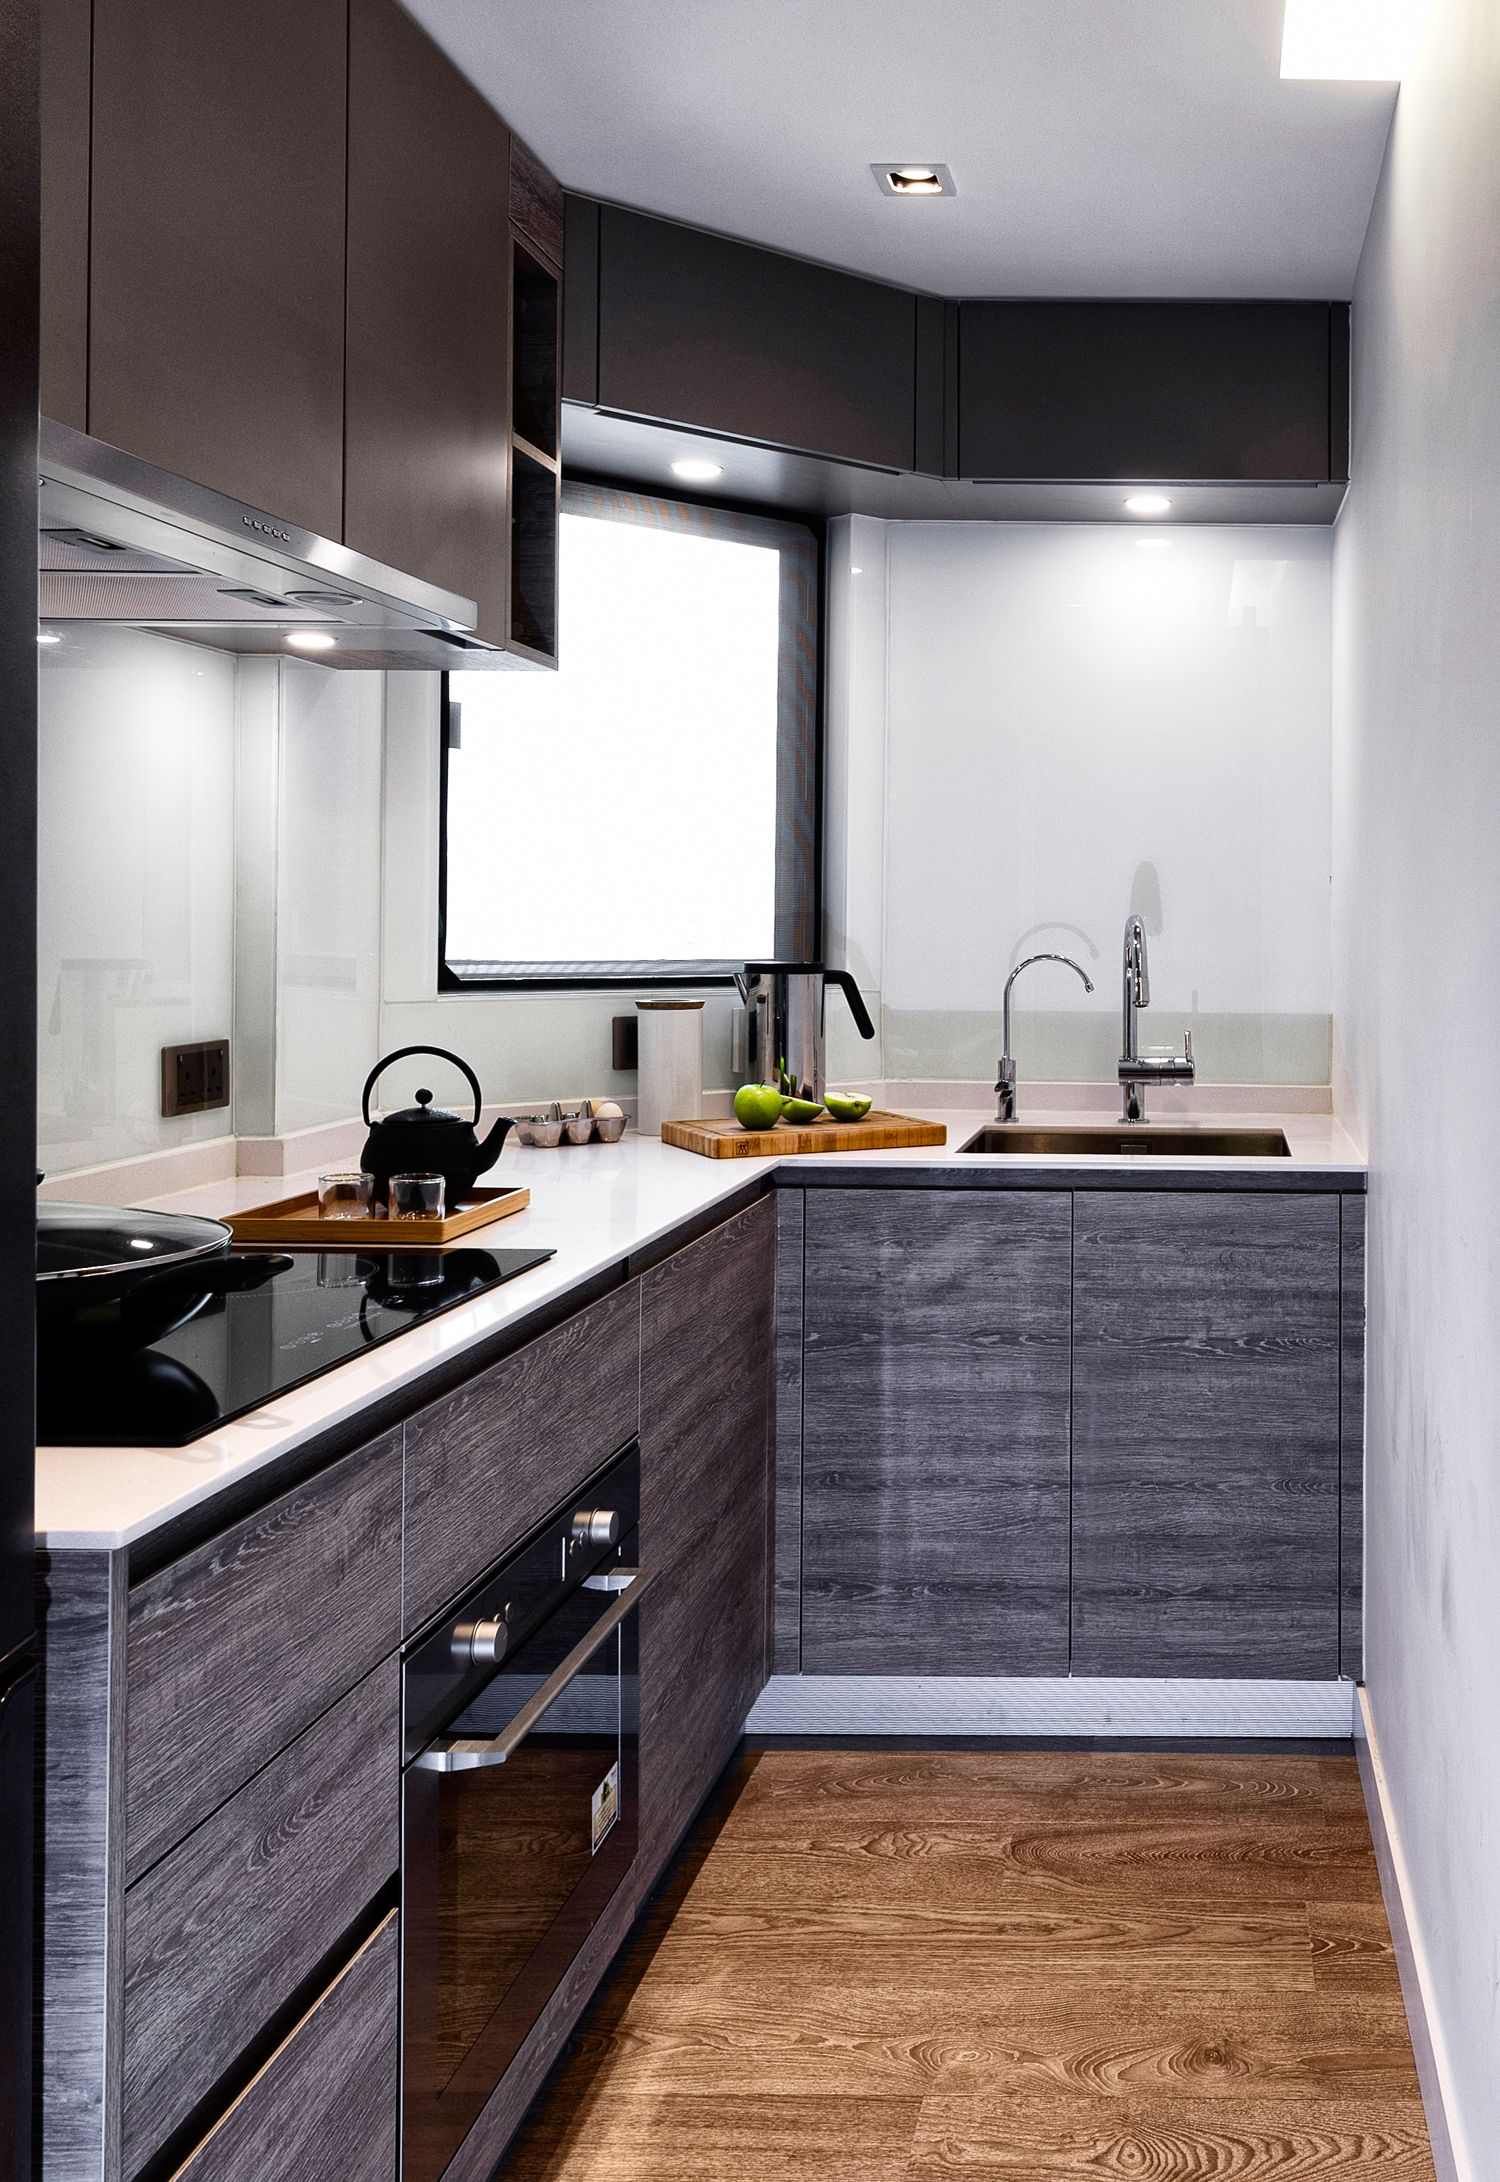 hong kong small kitchen design google search small on kitchen remodeling ideas and designs lowe s id=51931